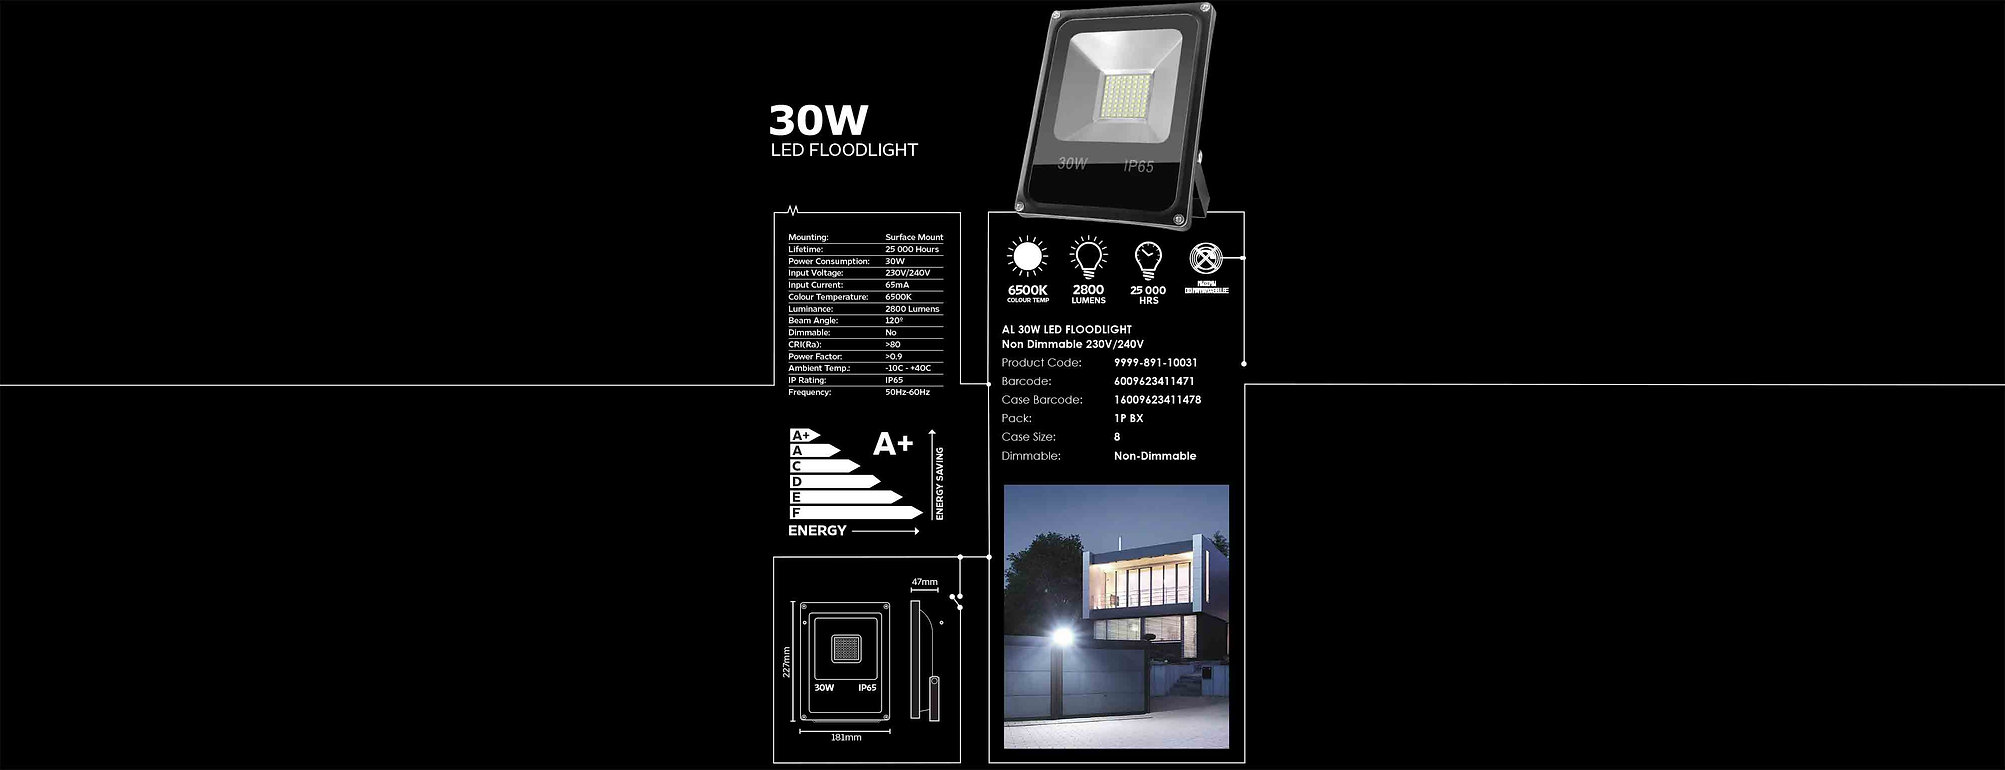 amplux-led-floodlight-30w.jpg